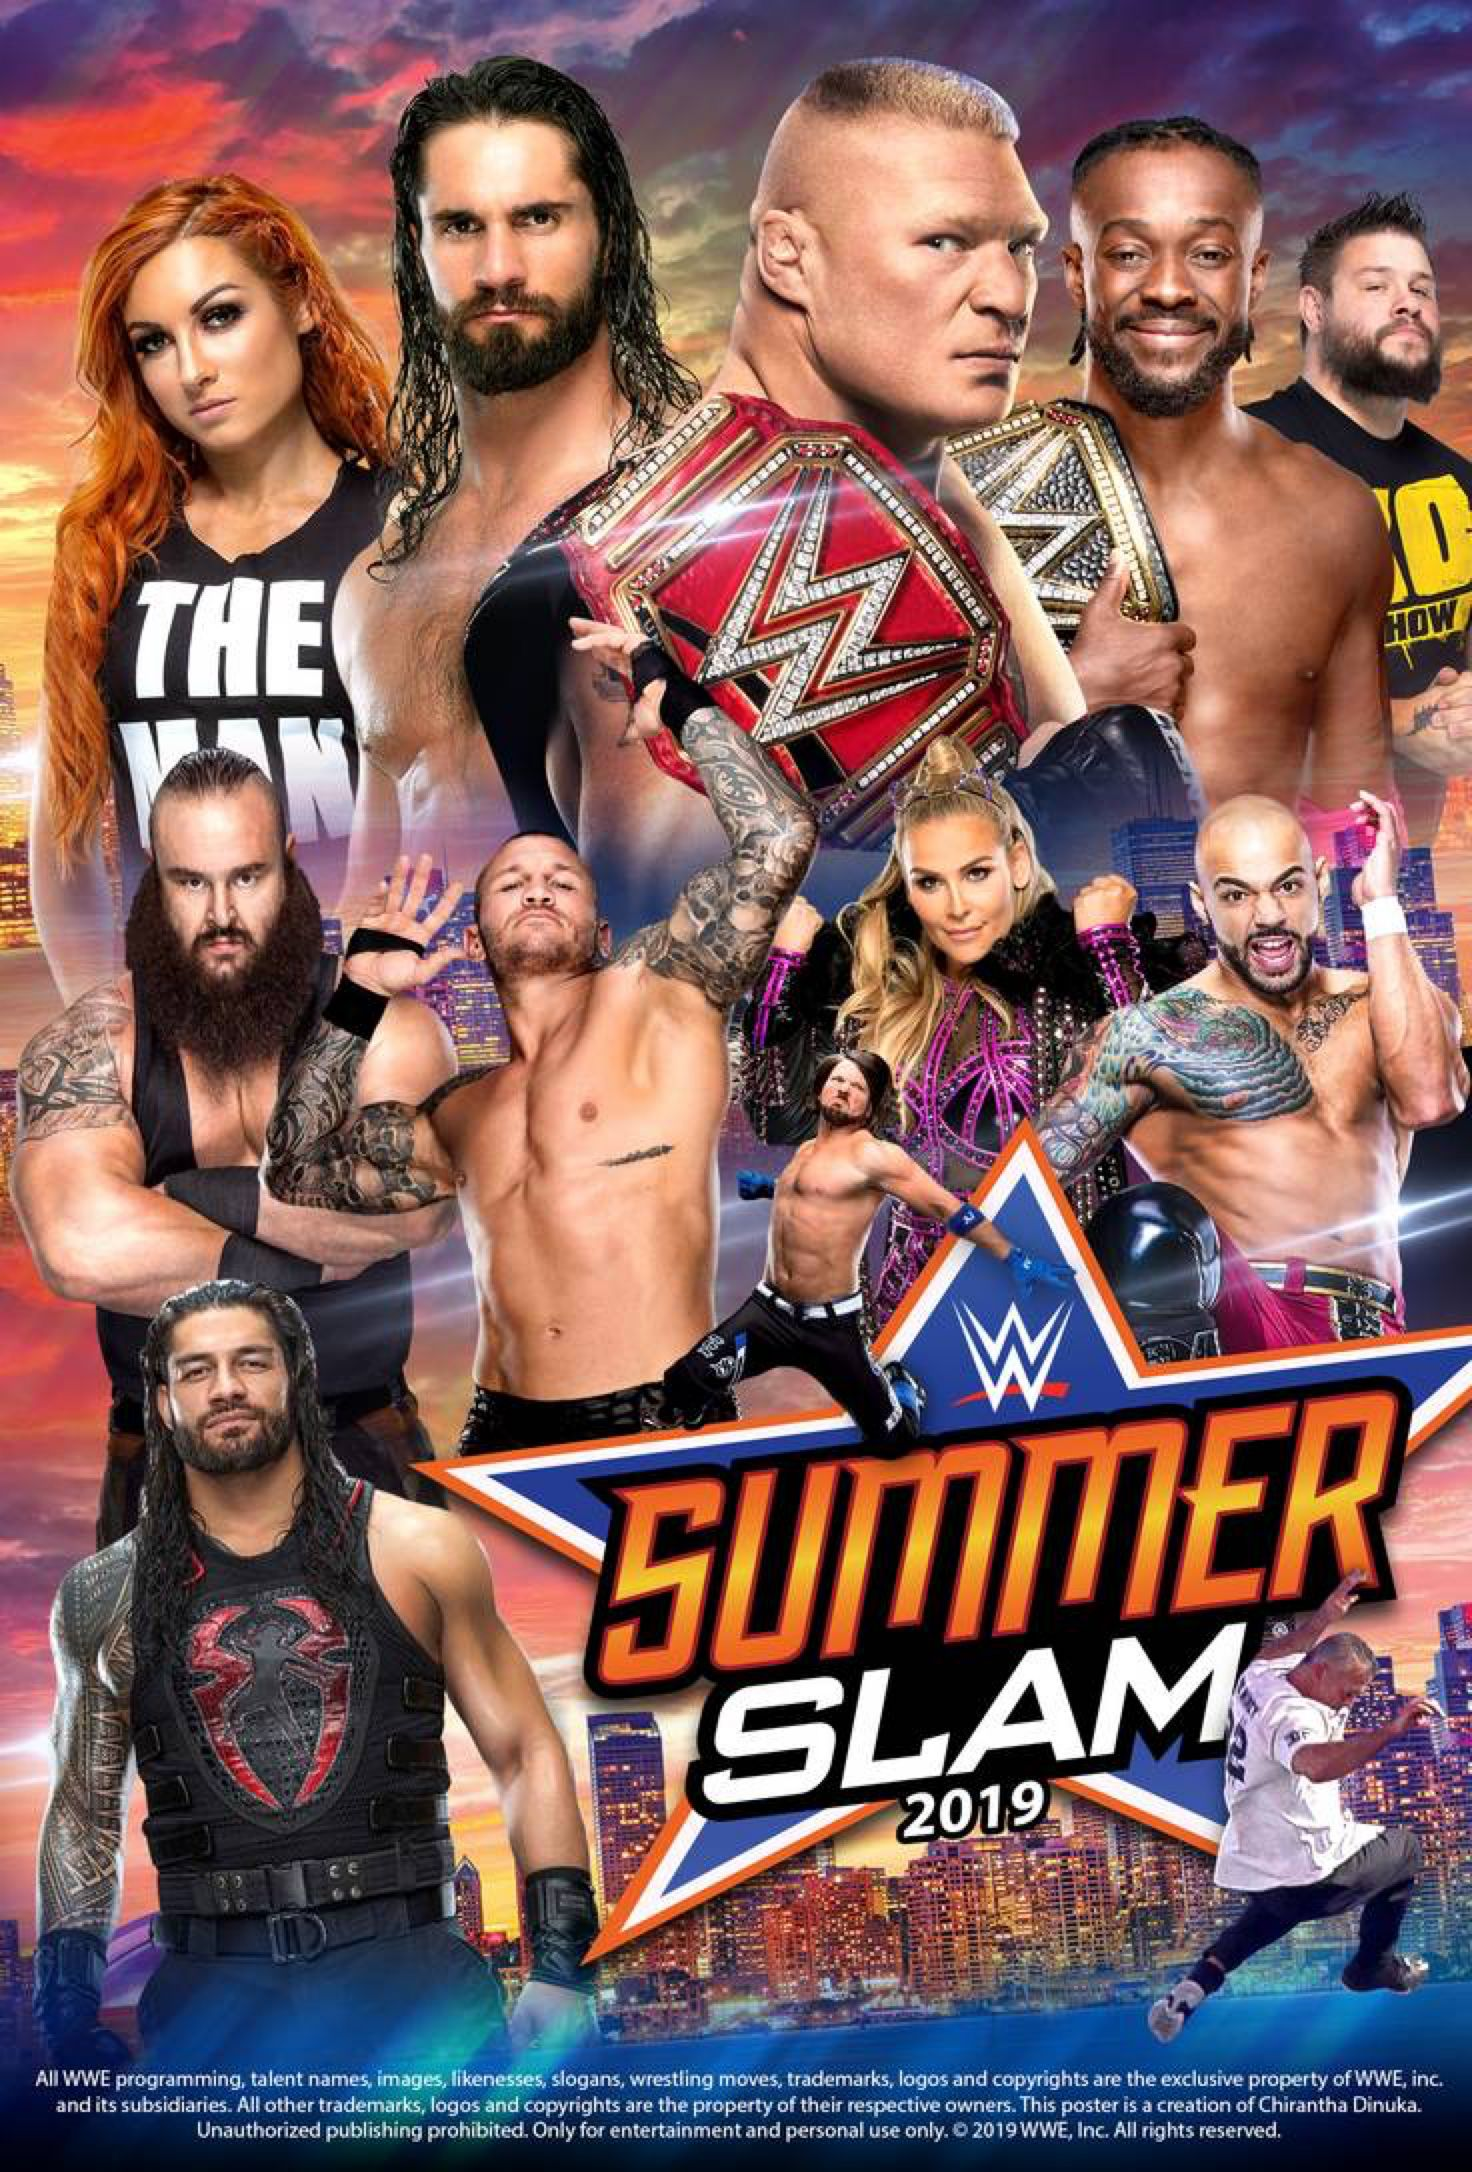 Wwe Summerslam 2019 Poster By Chirantha On Deviantart Wwe Summerslam Summerslam Wwe